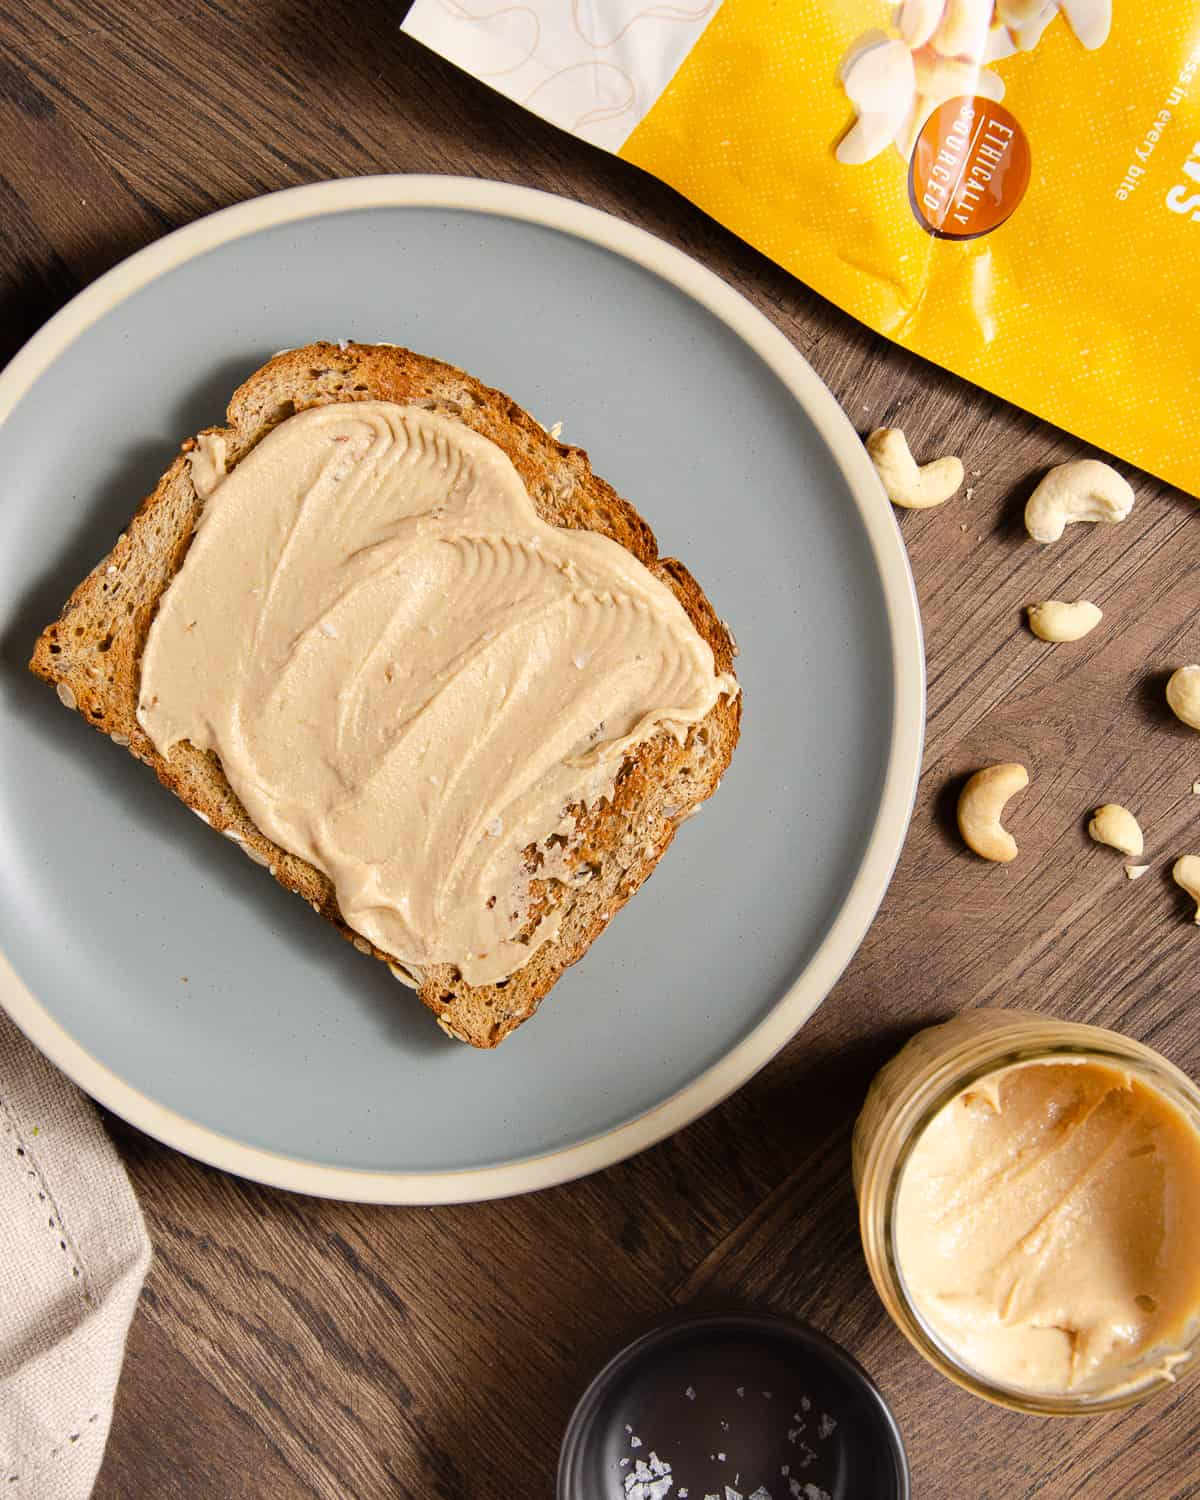 Cashew butter on a toasted slice of bread.